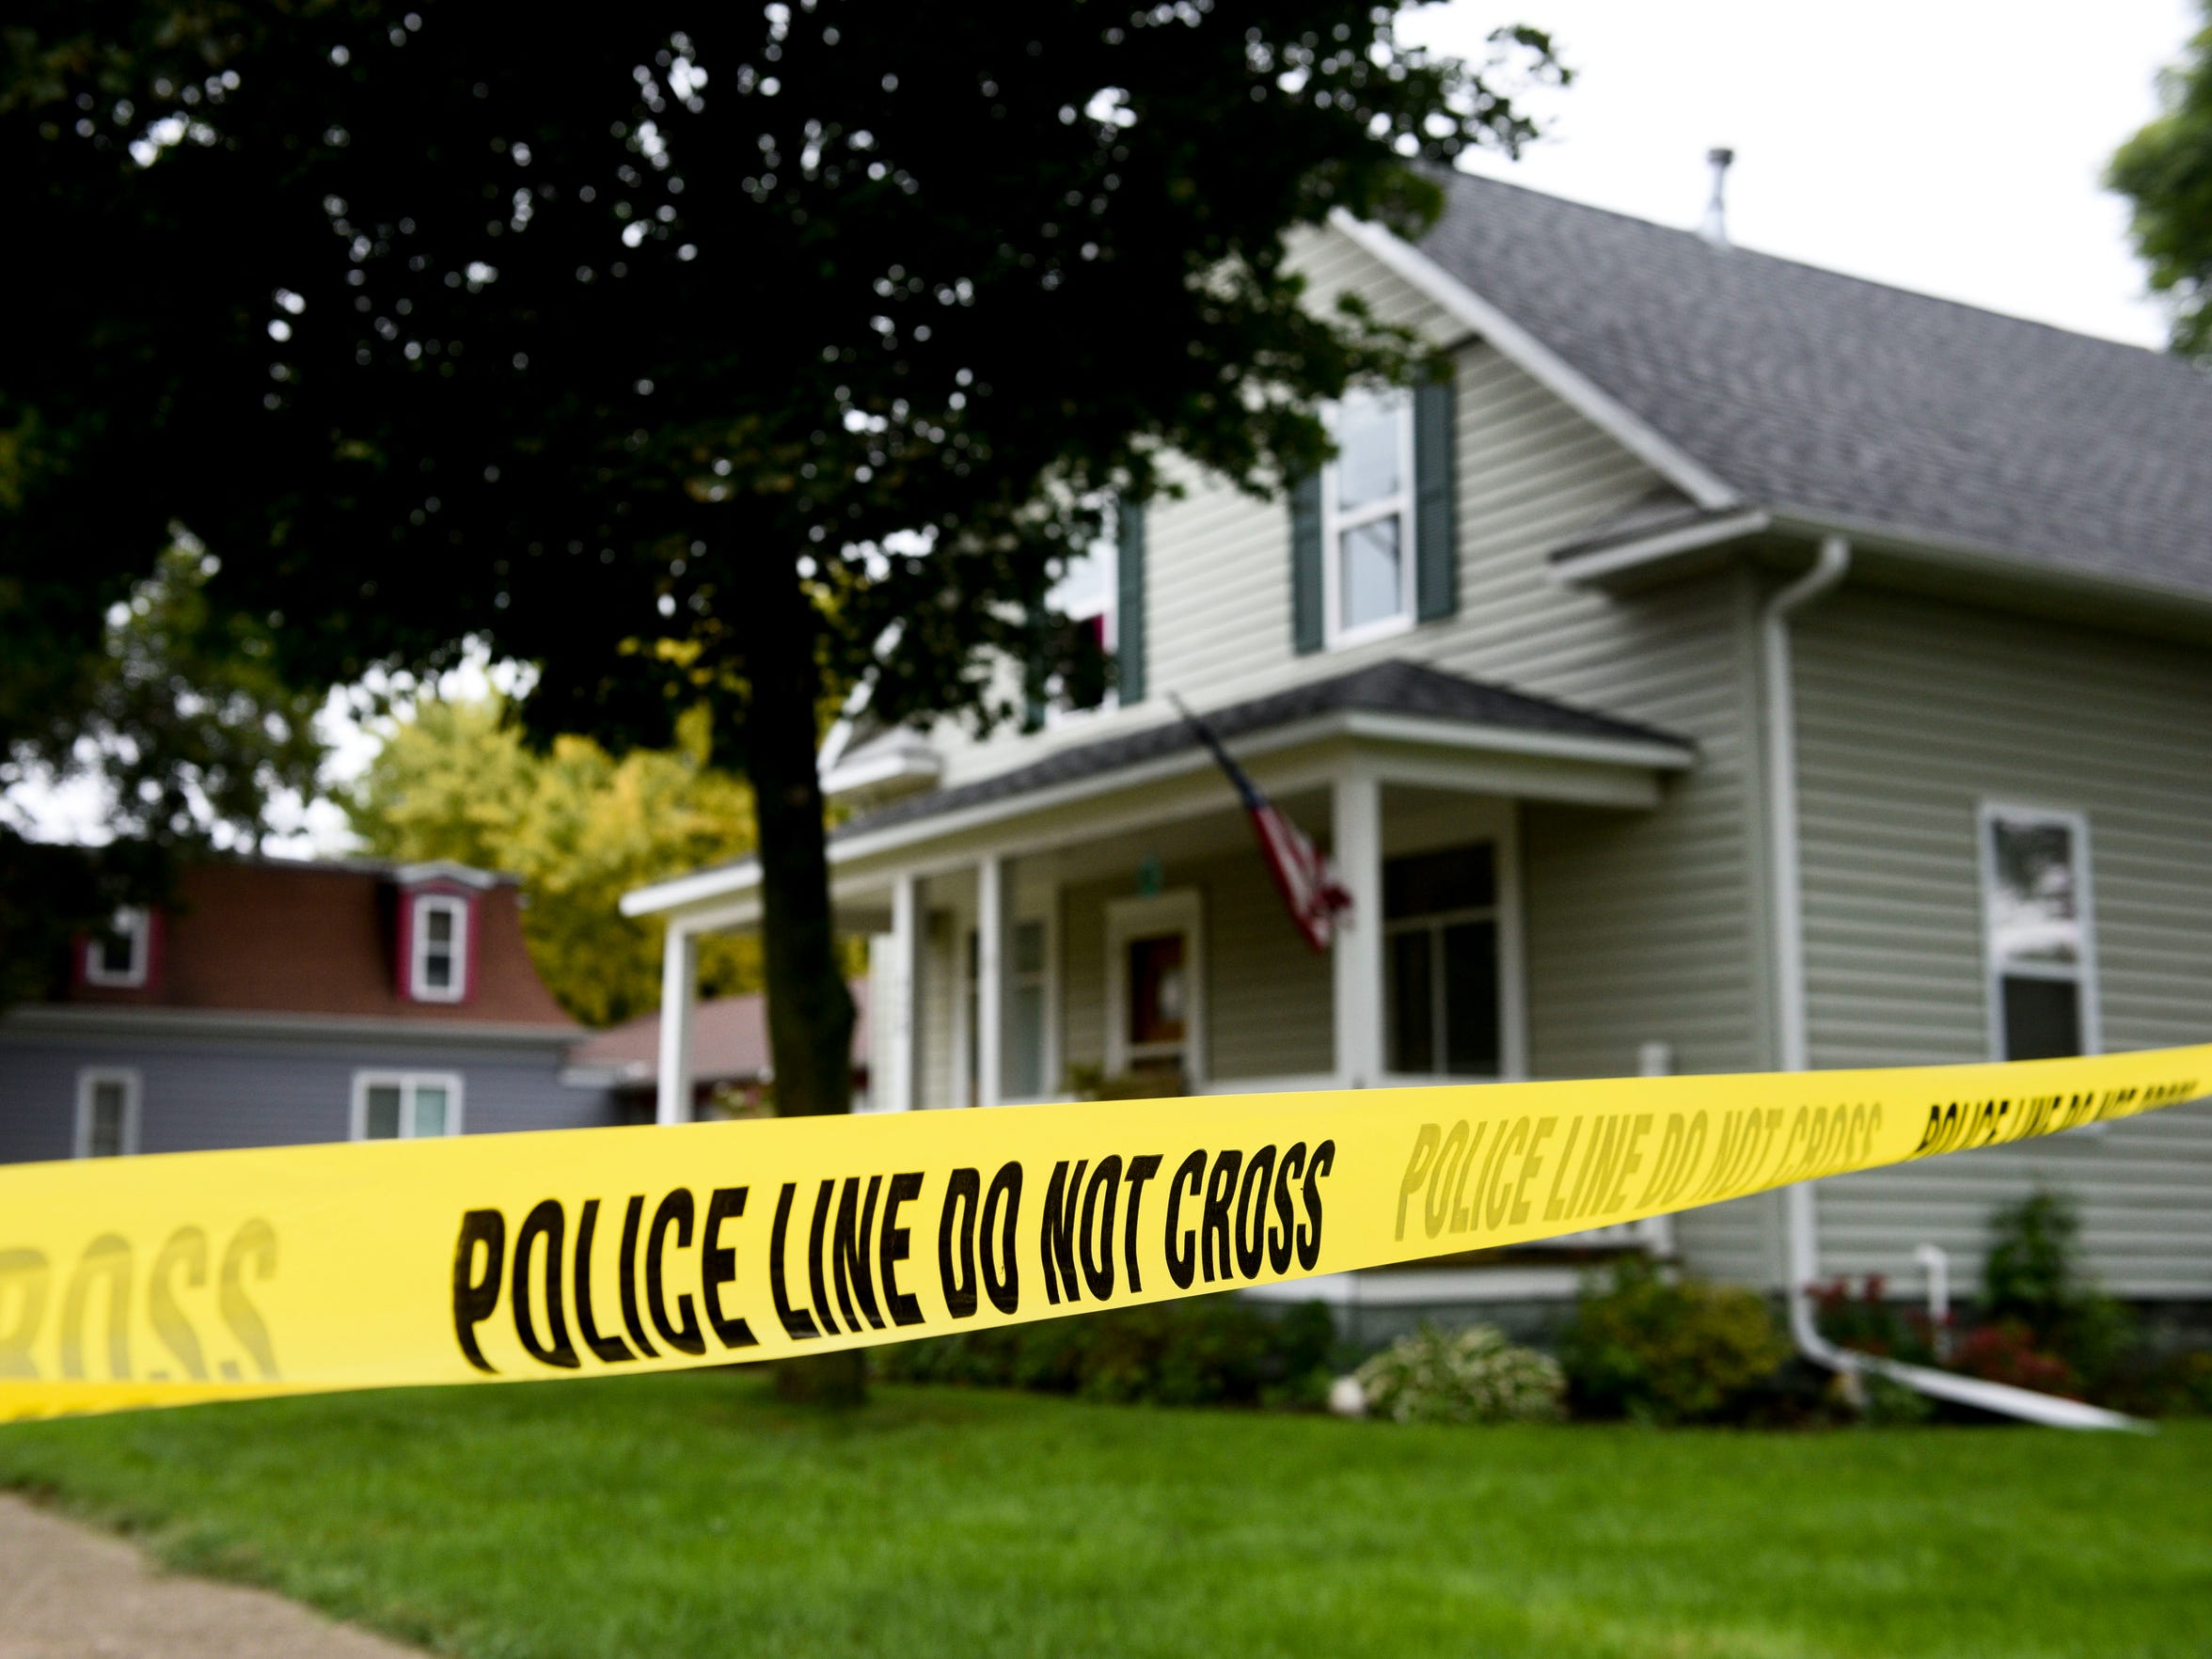 Police tape surrounds the house that was the scene of a shooting in Lennox on Tuesday, Sept. 26, 2017. The shooting, which left three dead including an seven-year-old boy, is being investigated as a murder-suicide according to the Lincoln County Sheriff's office.